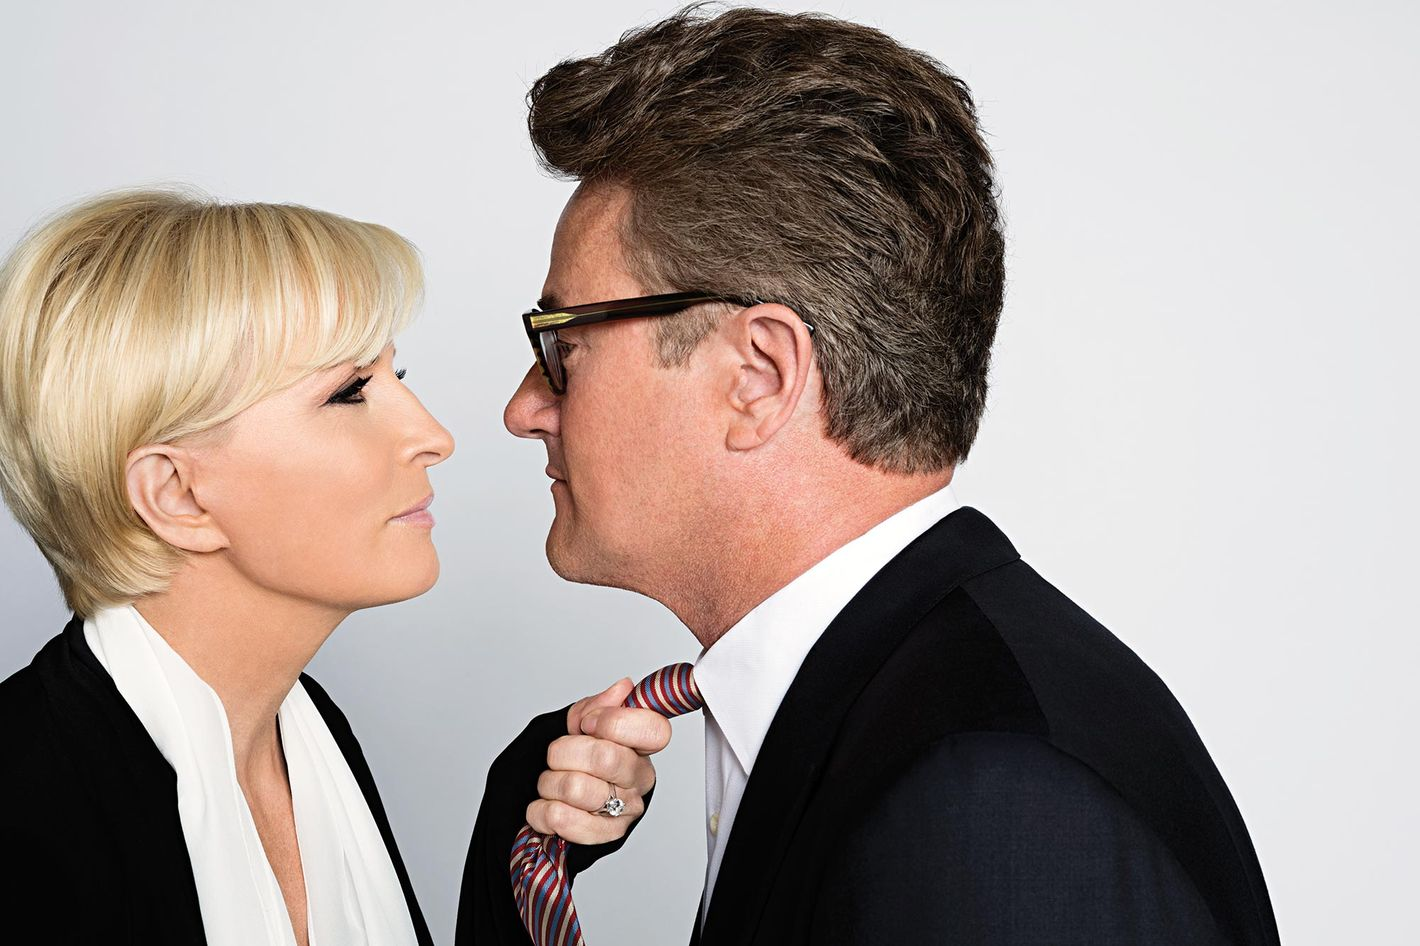 Image result for mika brzezinski images and joe scarborough tie grabbing